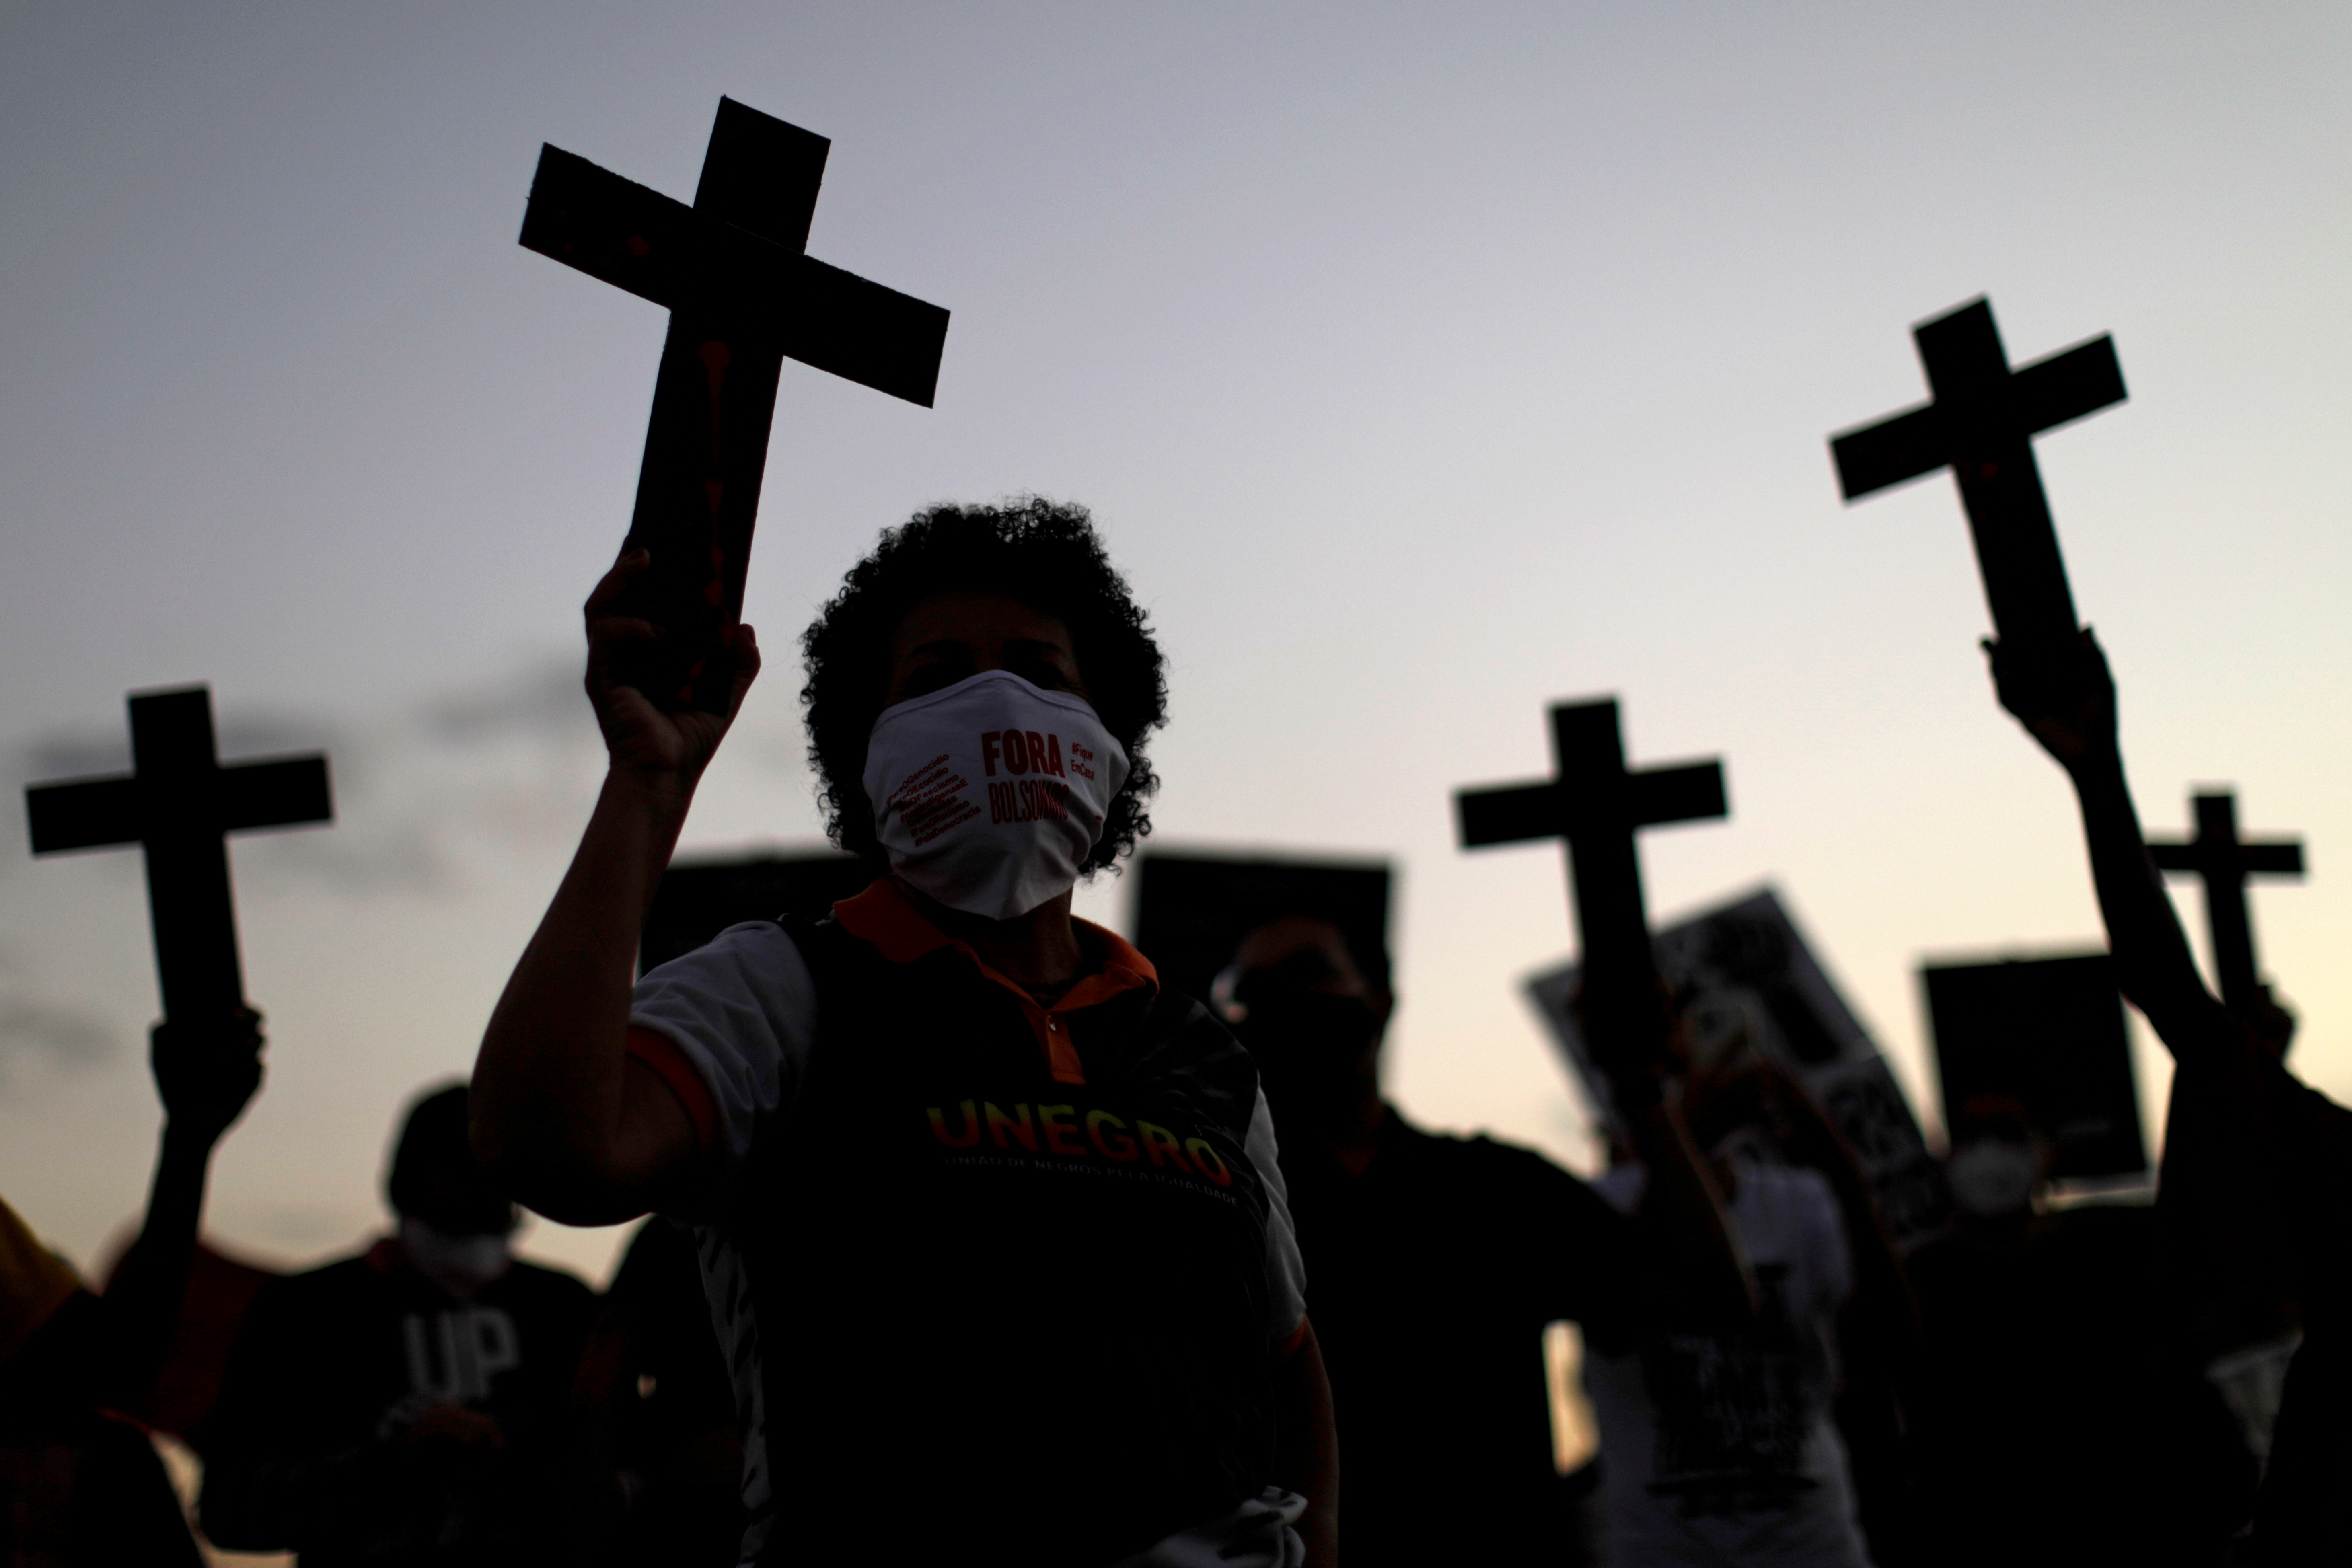 Black Movement activists protest against racism and police violence, on the day that marks 133 years since the abolition of Slavery in the country, in Brasilia, Brazil May 13, 2021. REUTERS/Ueslei Marcelino TPX IMAGES OF THE DAY